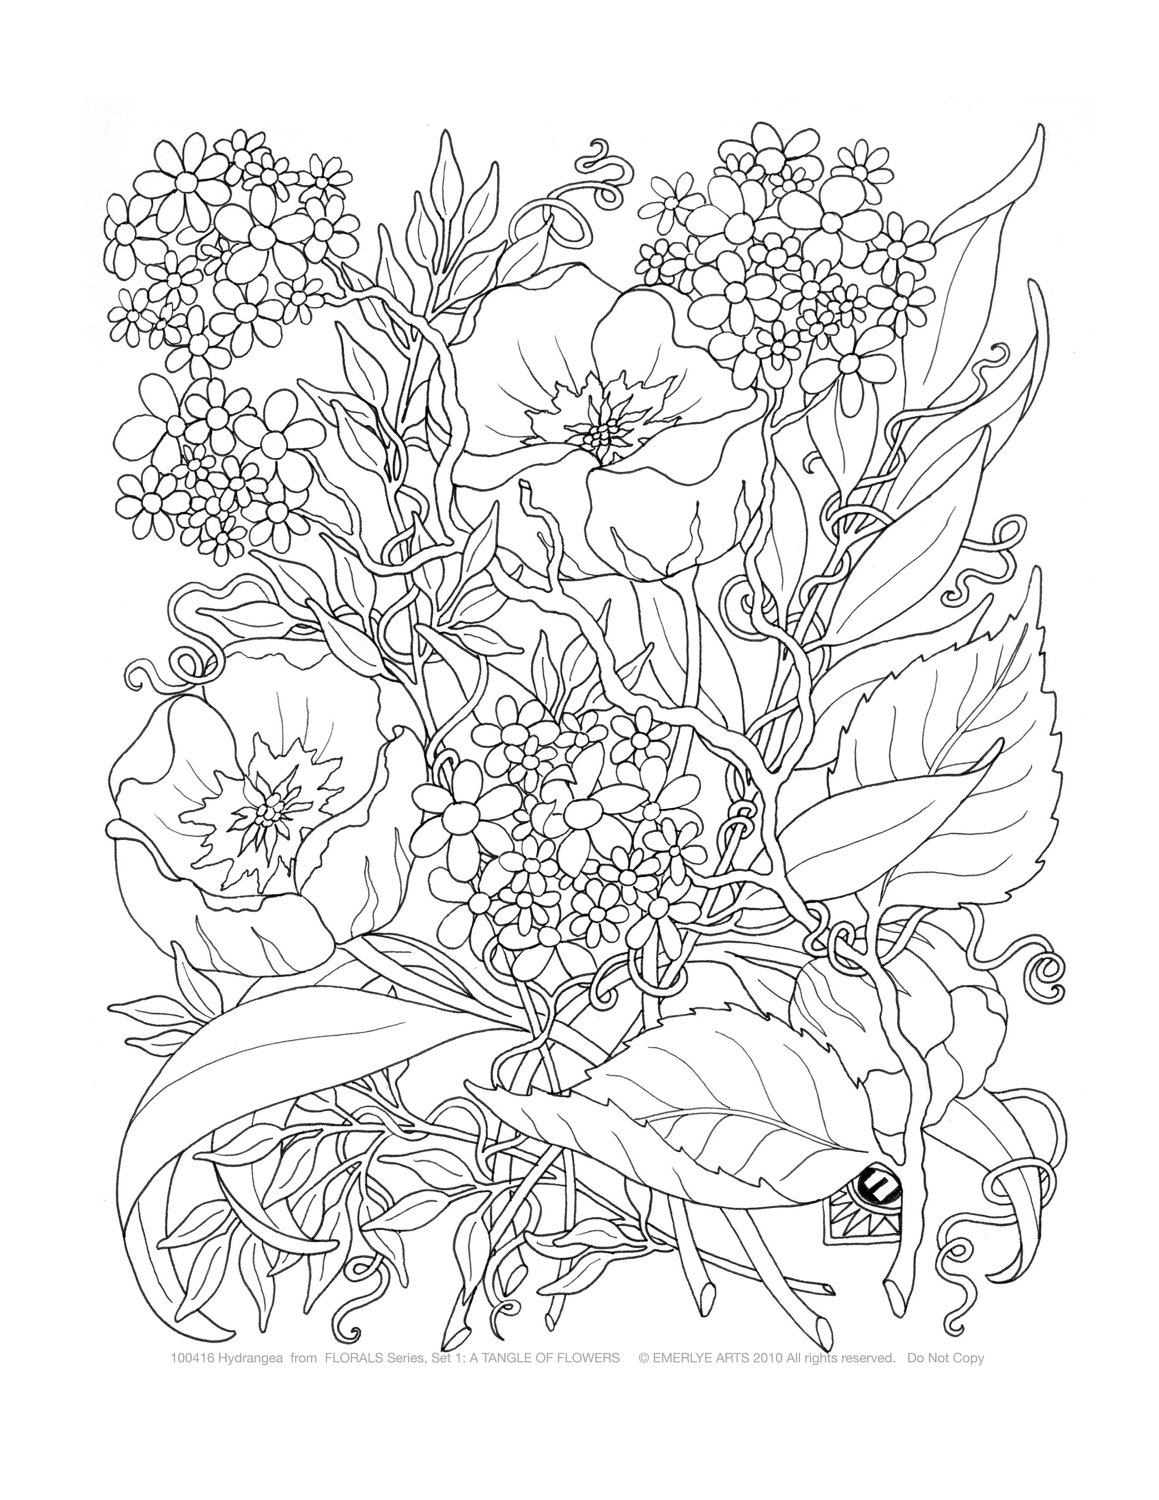 Detailed colouring pages for adults - Detailed Flower Coloring Pages